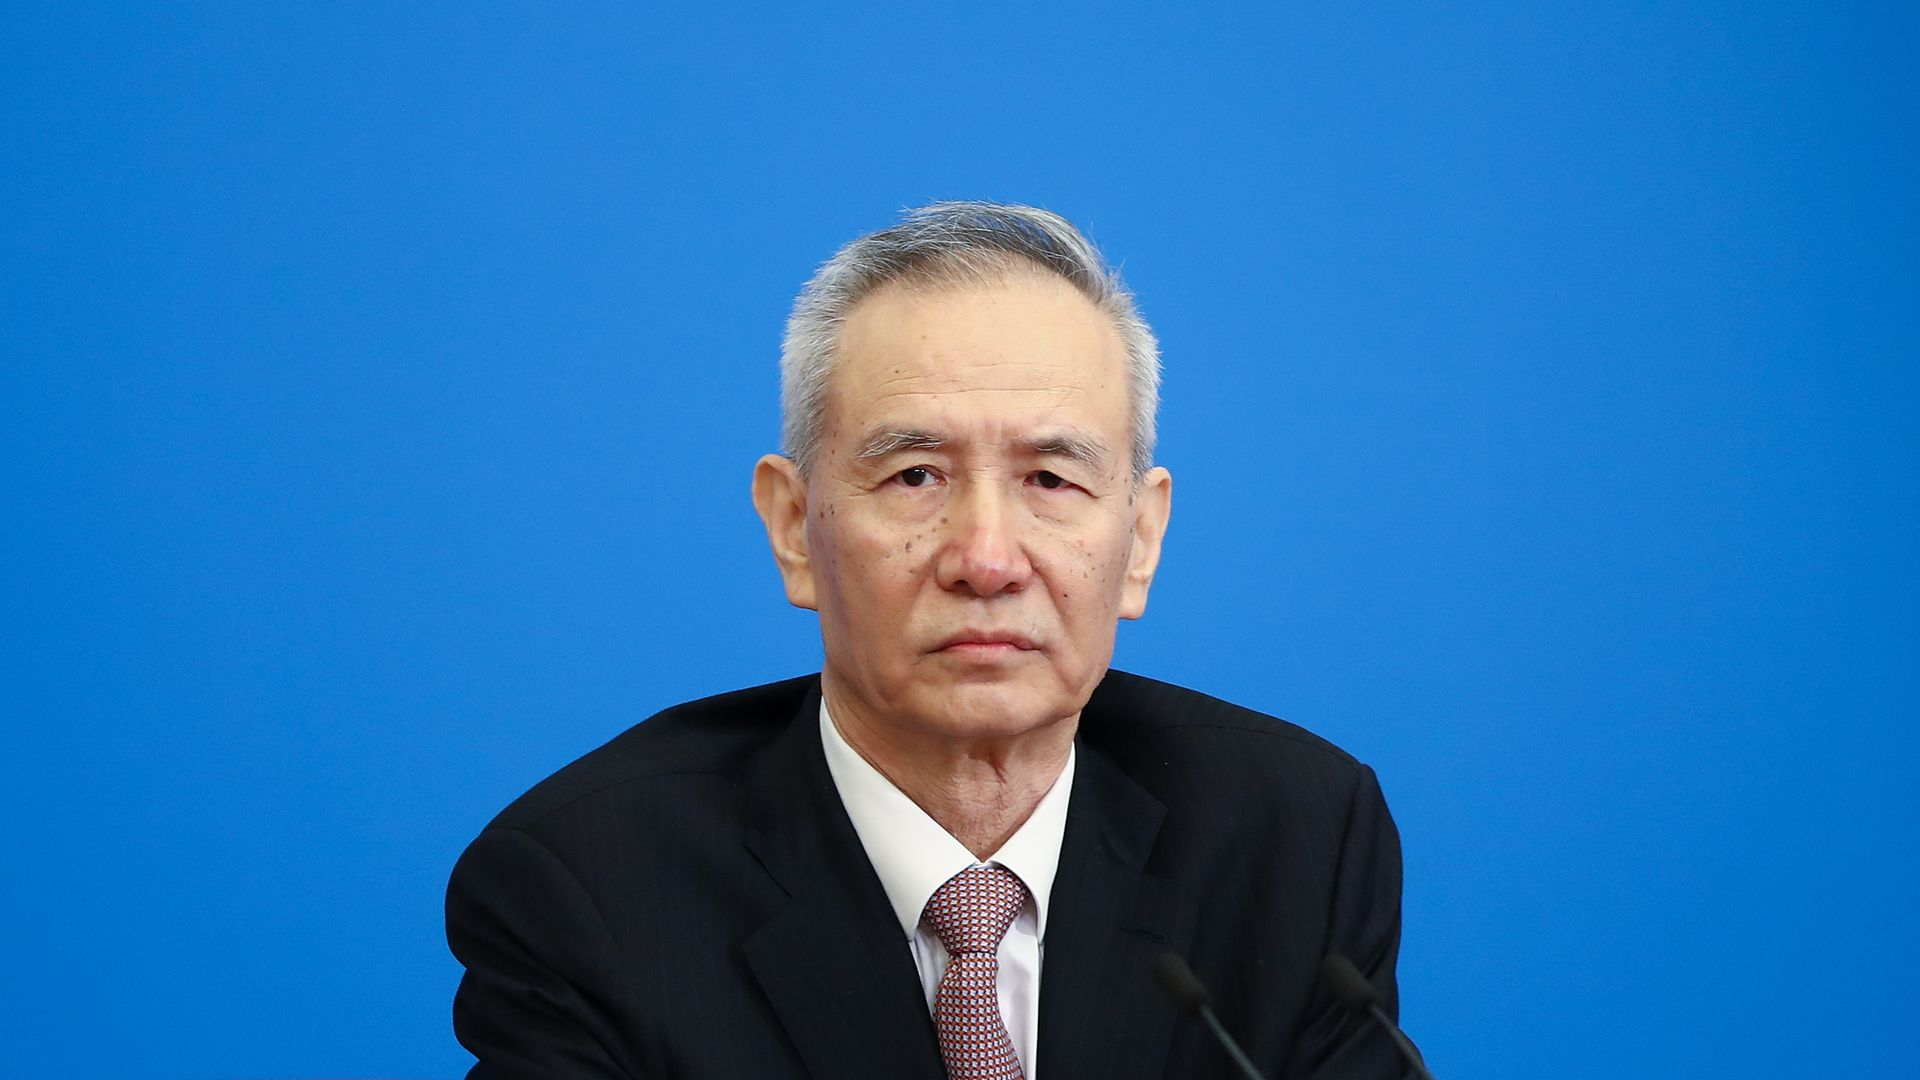 Liu He, China's vice premier and director of the central leading group of the CCP, attends a news conference March 20, 2018